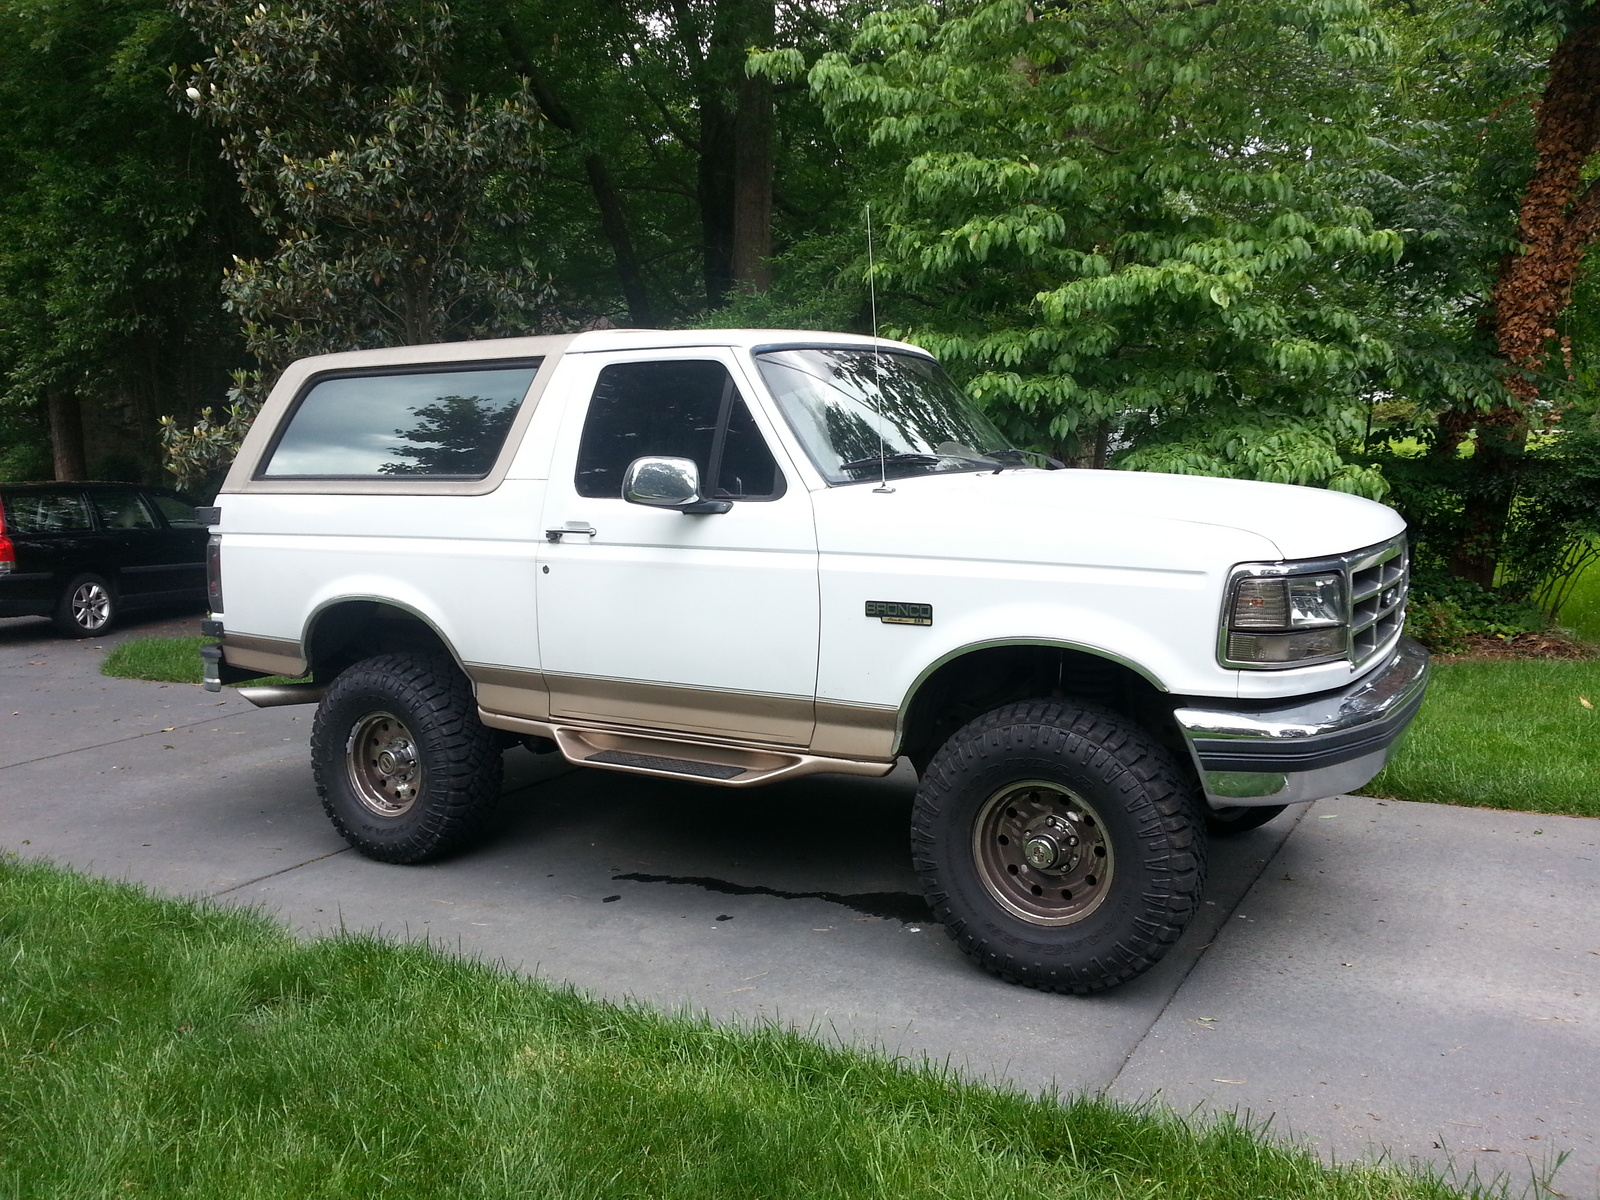 1980 1996 Ford Truck 1980 1996 Ford Bronco Interior Autos Post